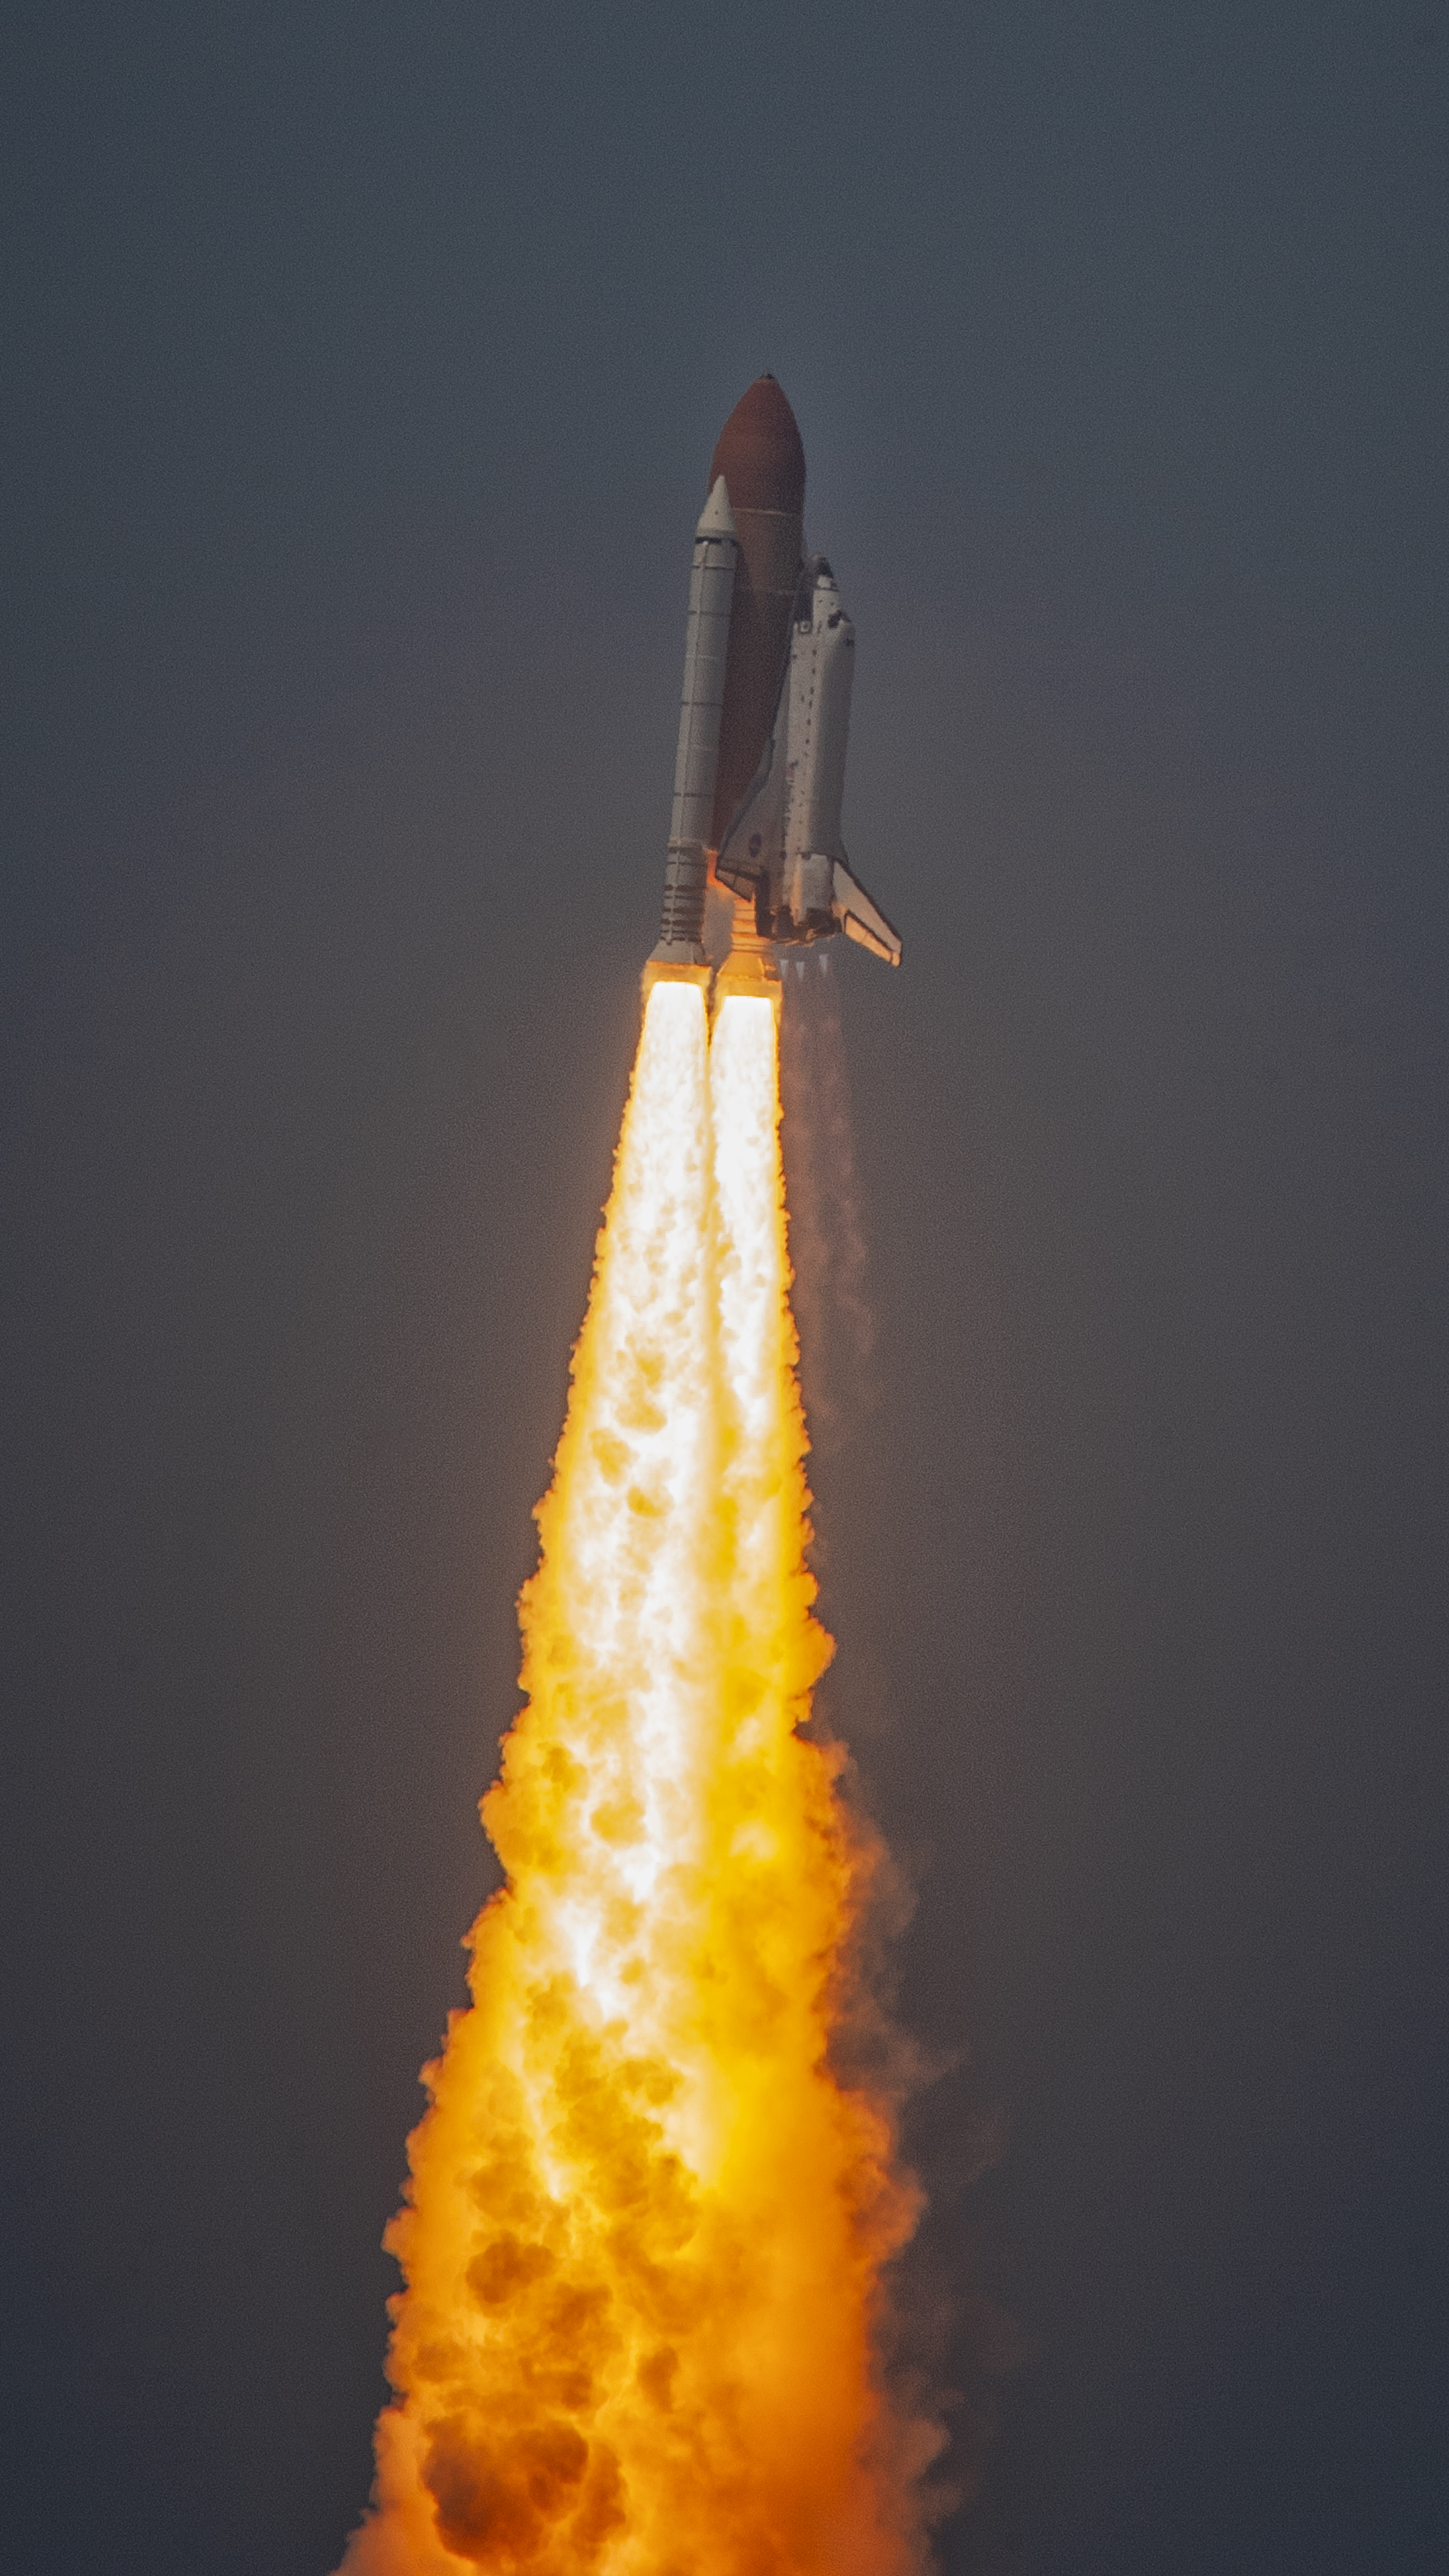 STS-132 Shuttle Atlantis on Lift-off